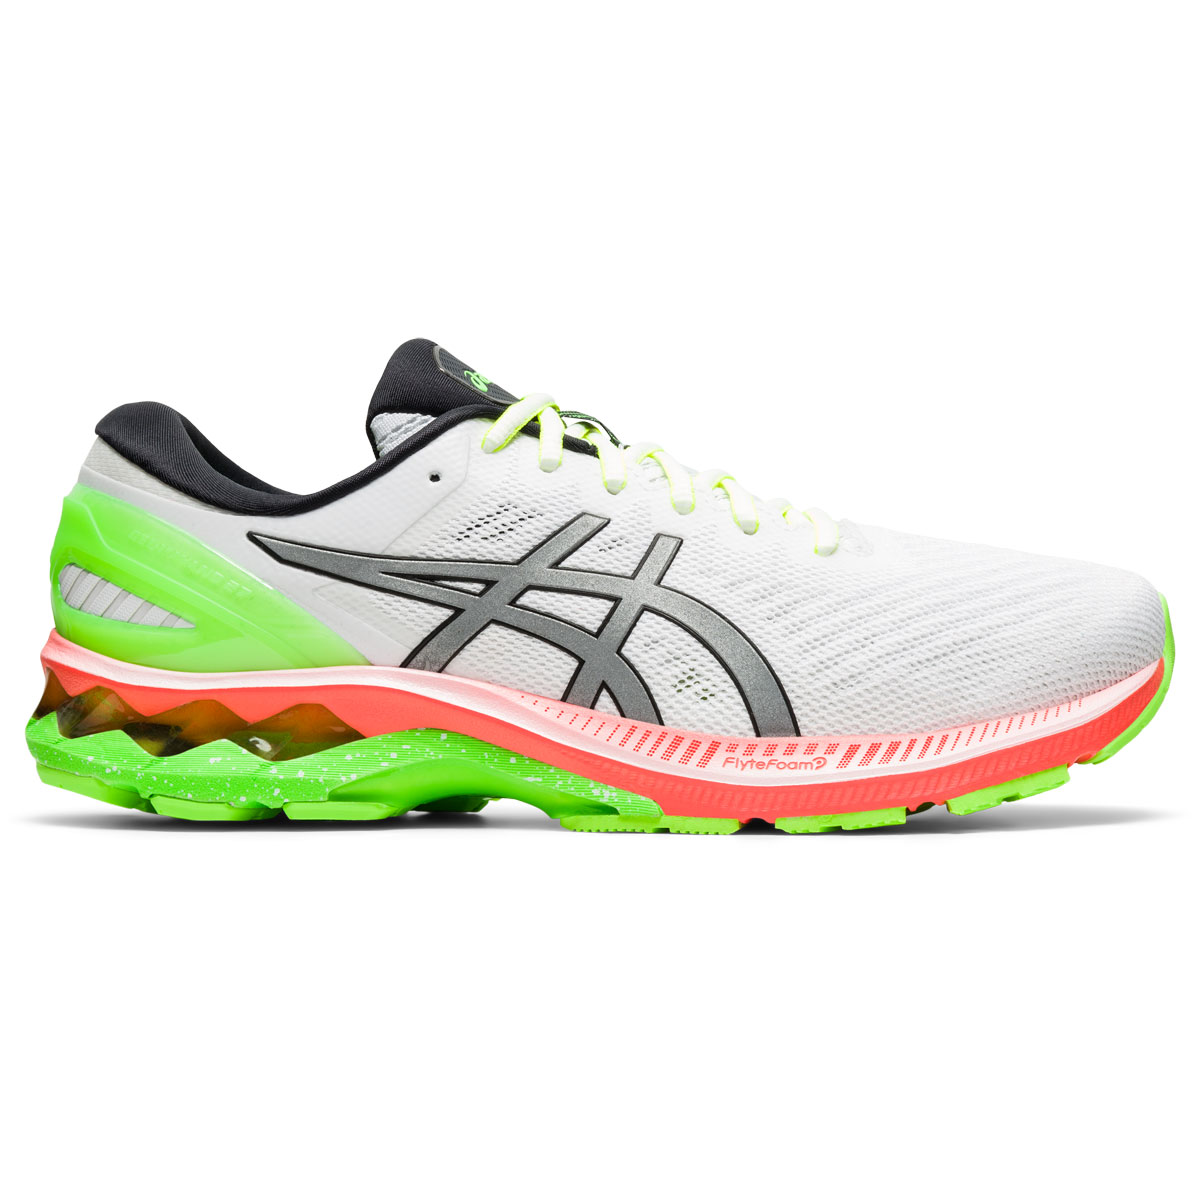 Men's Asics GEL-Kayano 27 Lite-Show Running Shoe - Color: White/Pure Silv (Regular Width) - Size: 6, White/Pure Silver, large, image 1